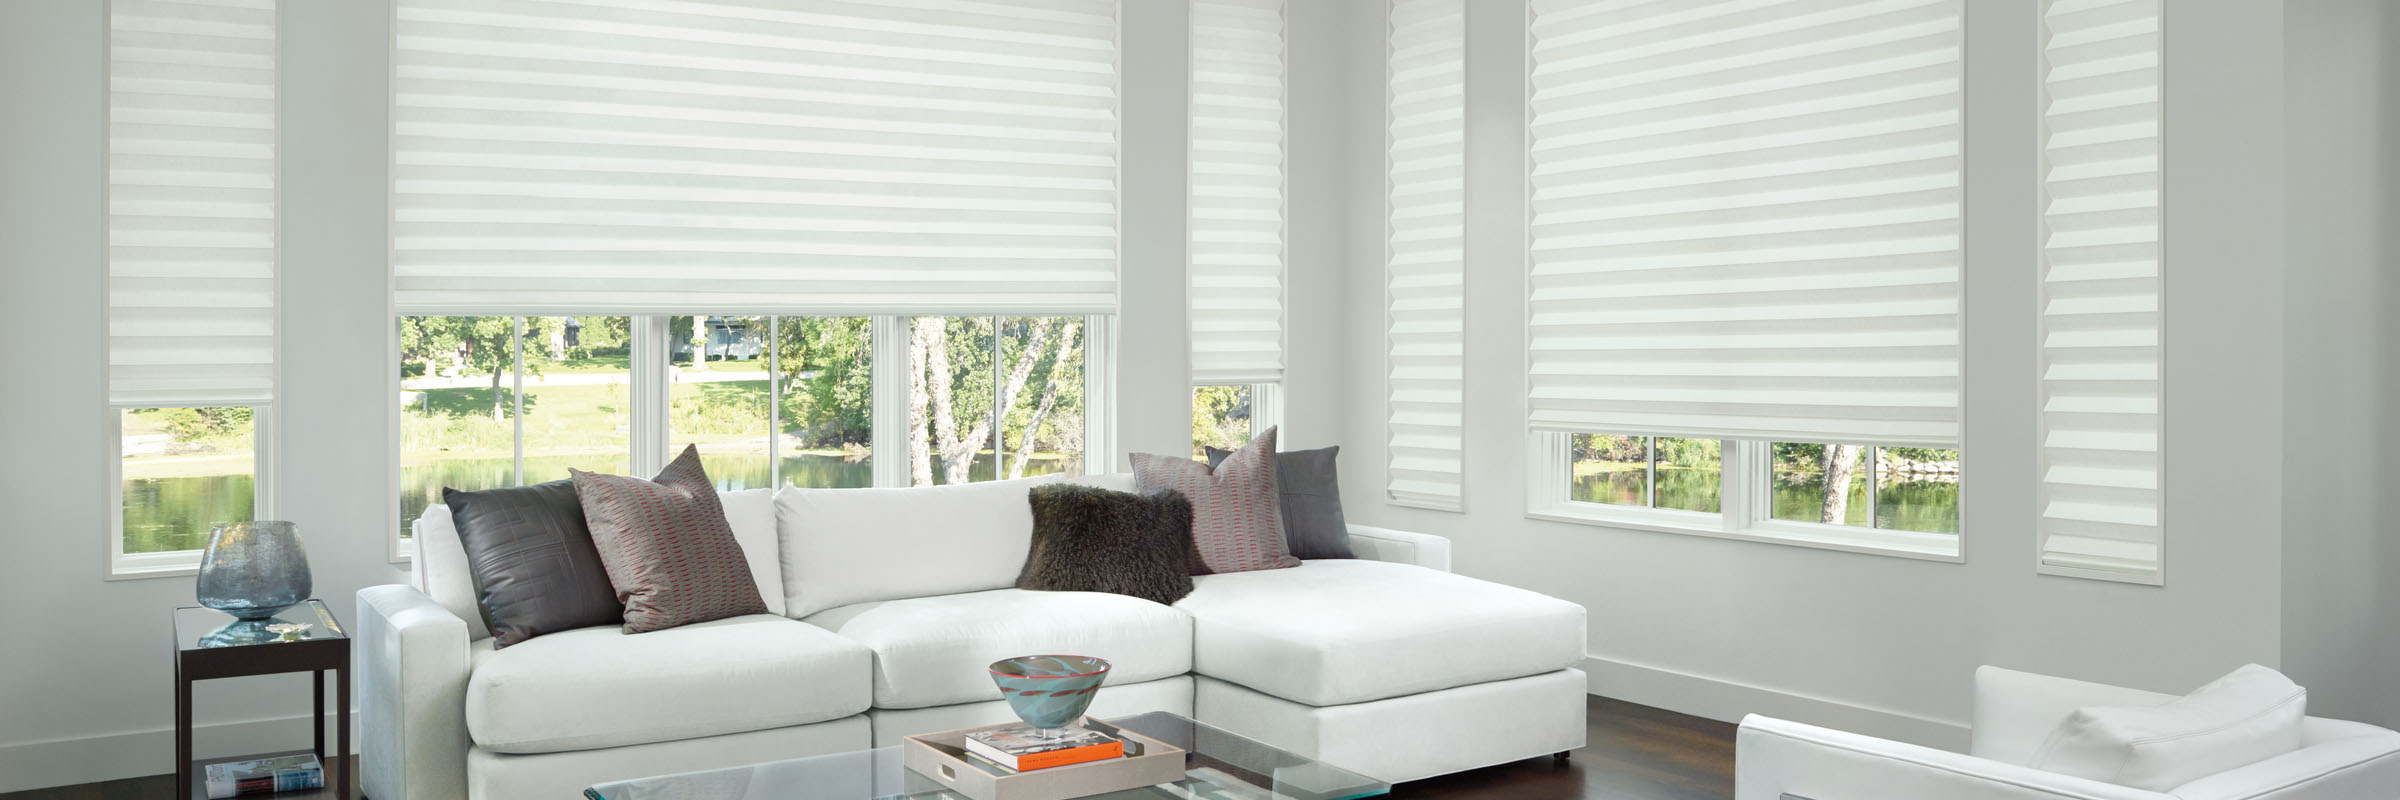 Solera® Soft Shades with PowerView® Motorization